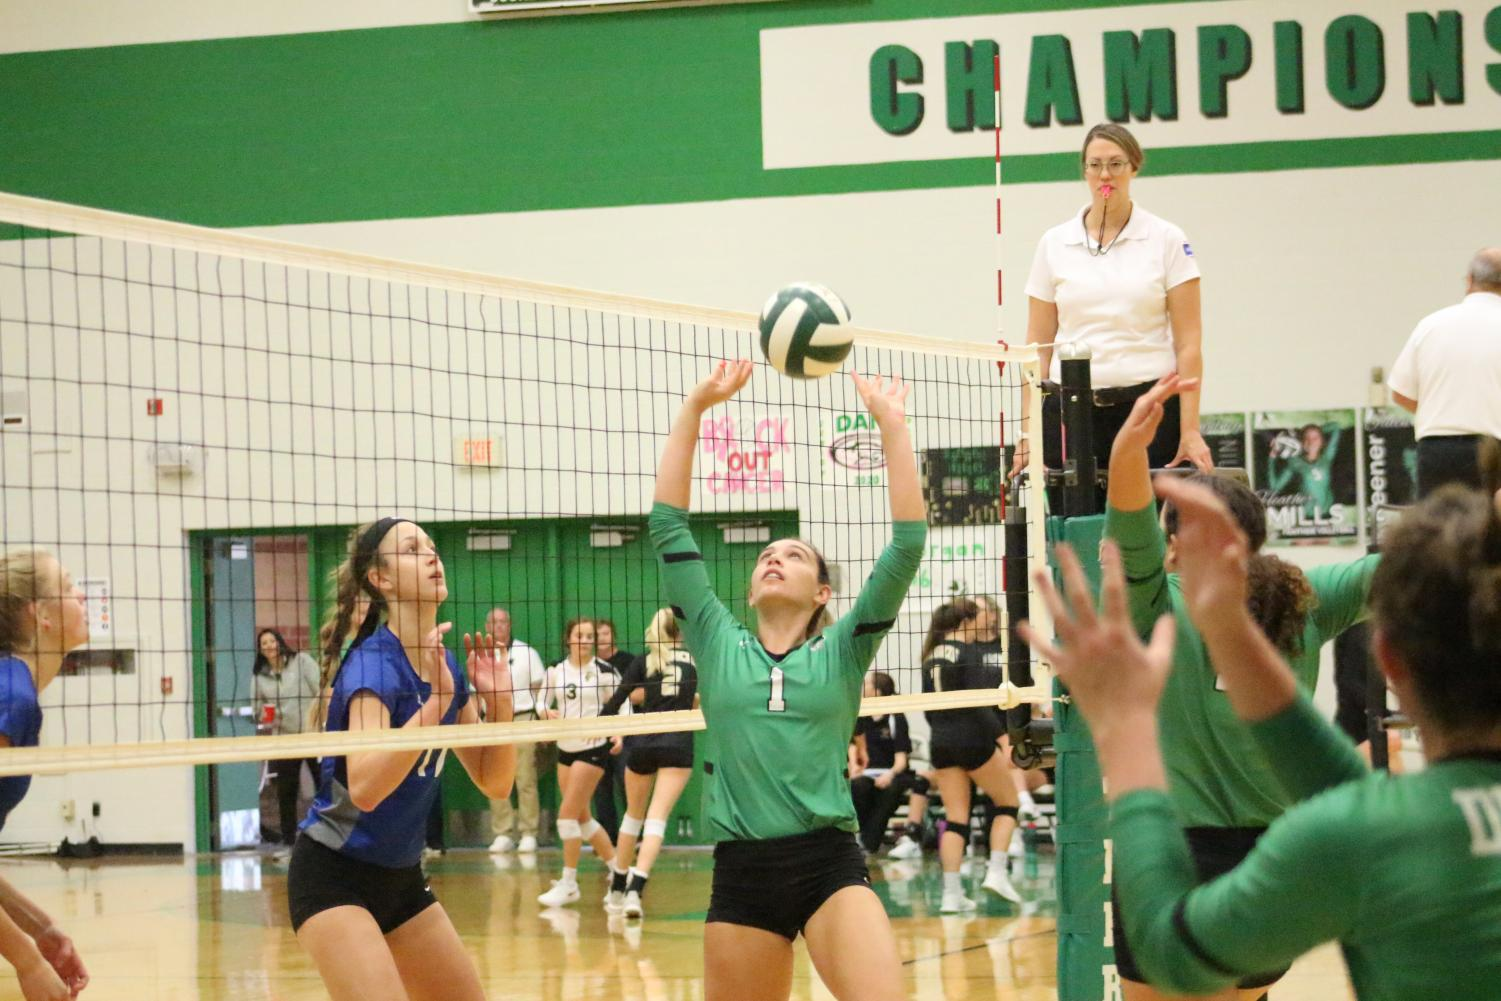 Senior+Sydney+Nilles+sets+the+ball+in+the+second+set+against+Washburn+Rural